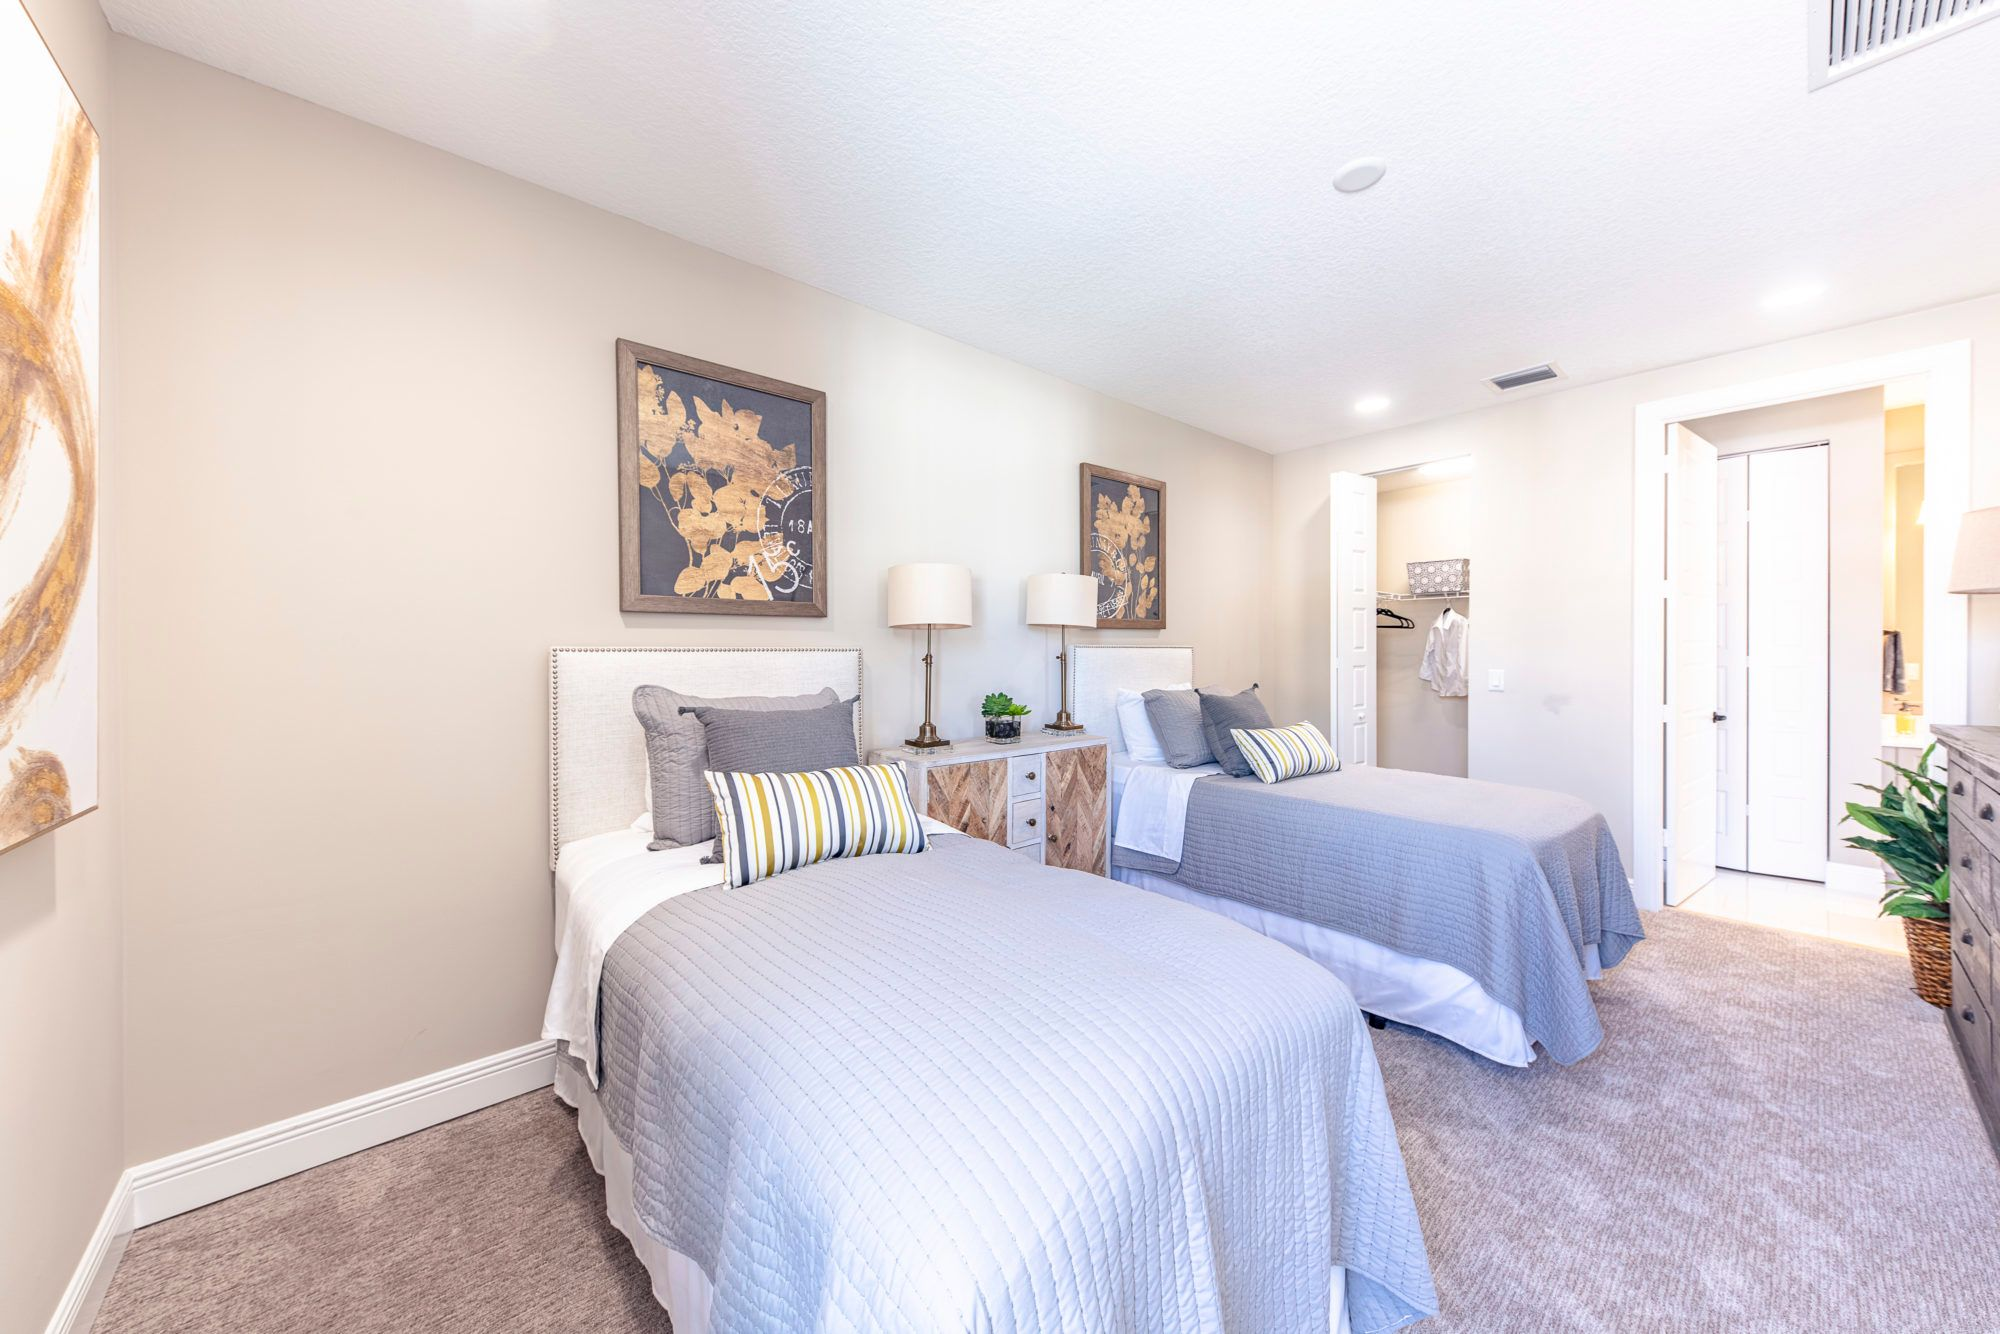 Bedroom featured in the Sancia By 5 Star Development in Palm Beach County, FL